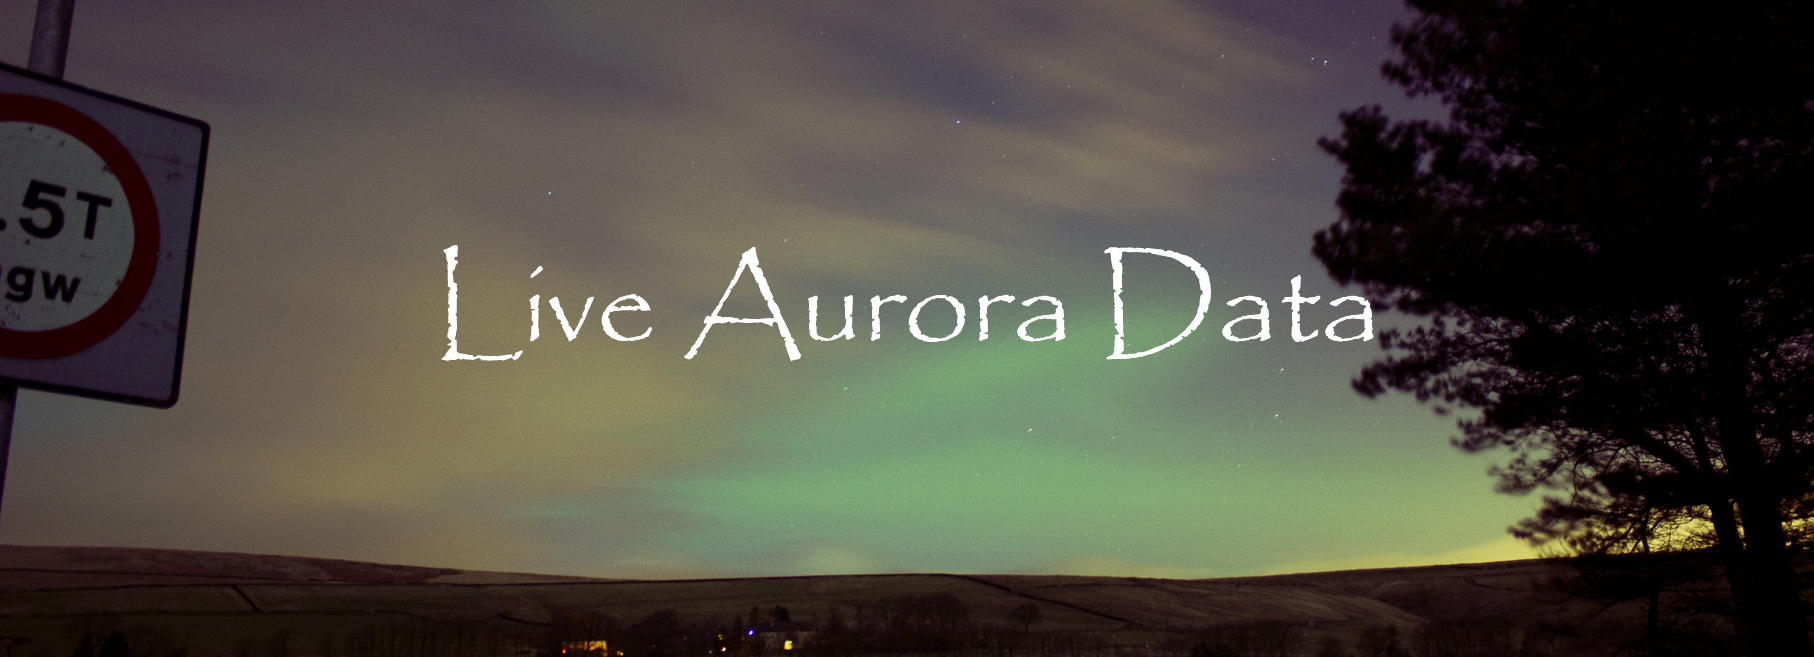 Live Aurora Data (Image by Sarah Hall & Colin Campbell)